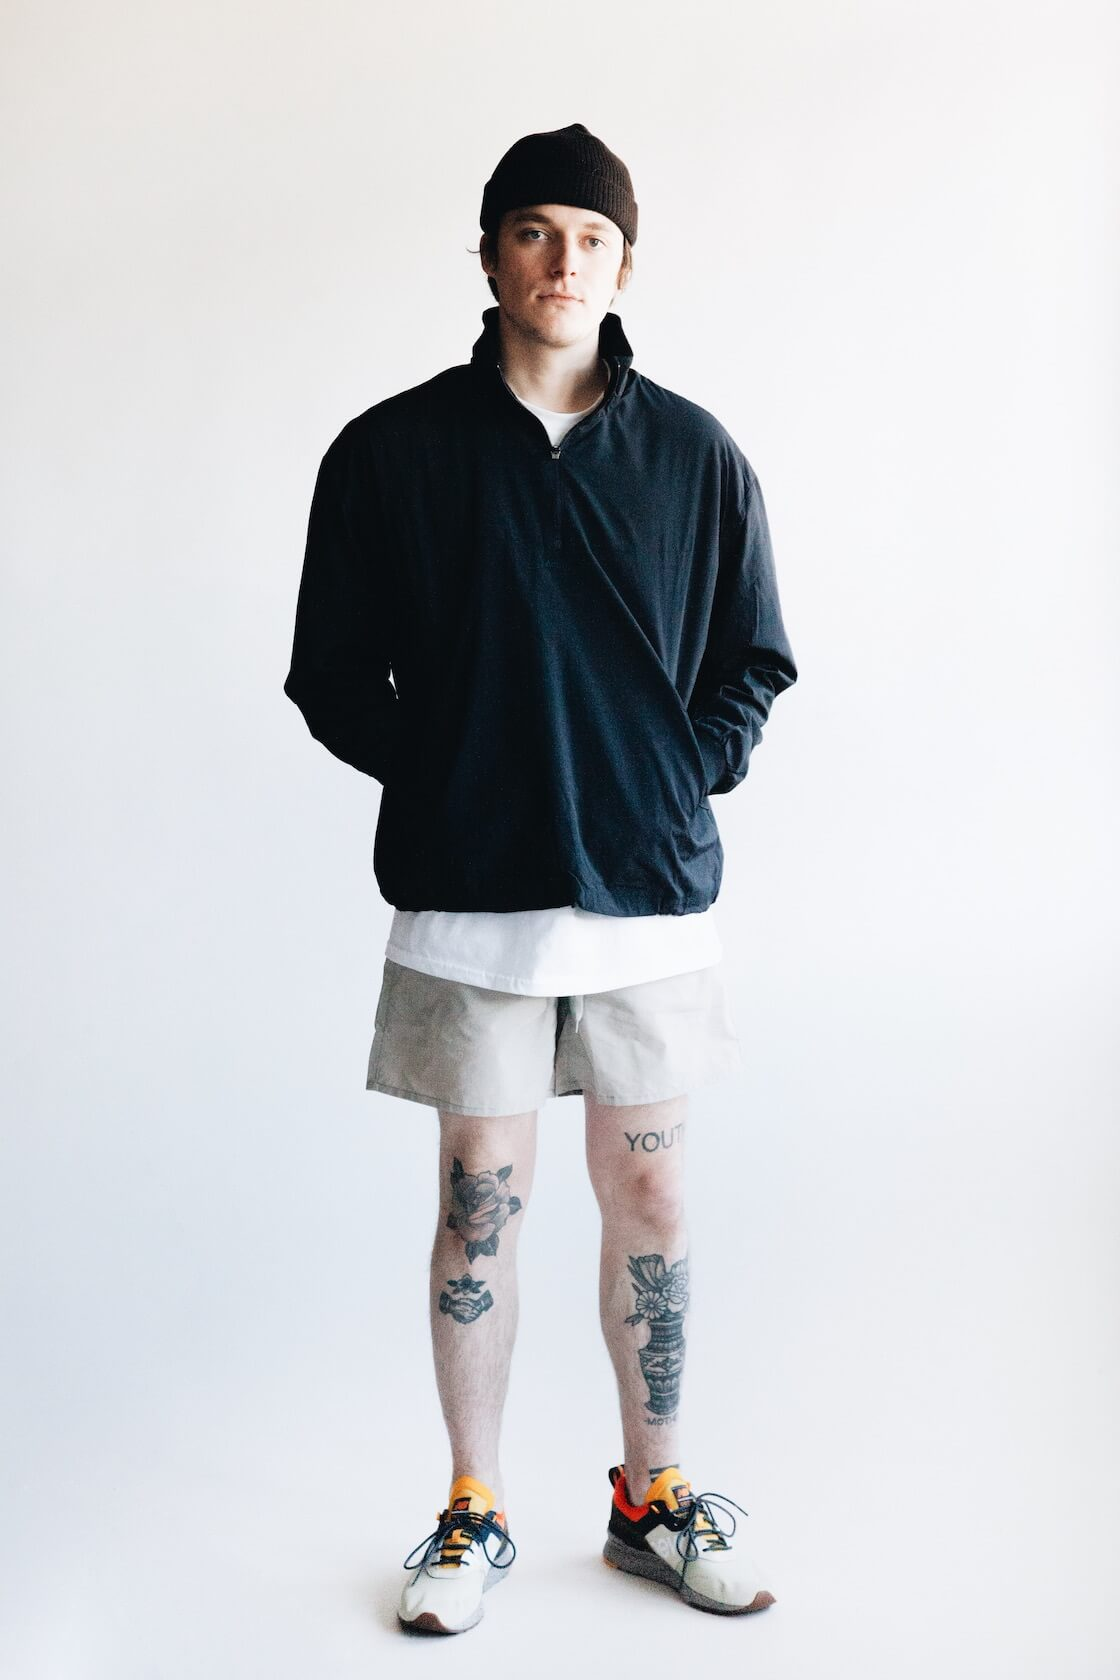 UC Jacket from Adsum, Clark Pocket Tee from Lady White Co., Site Shorts from Adsum and 997H sneakers from New Balance on body